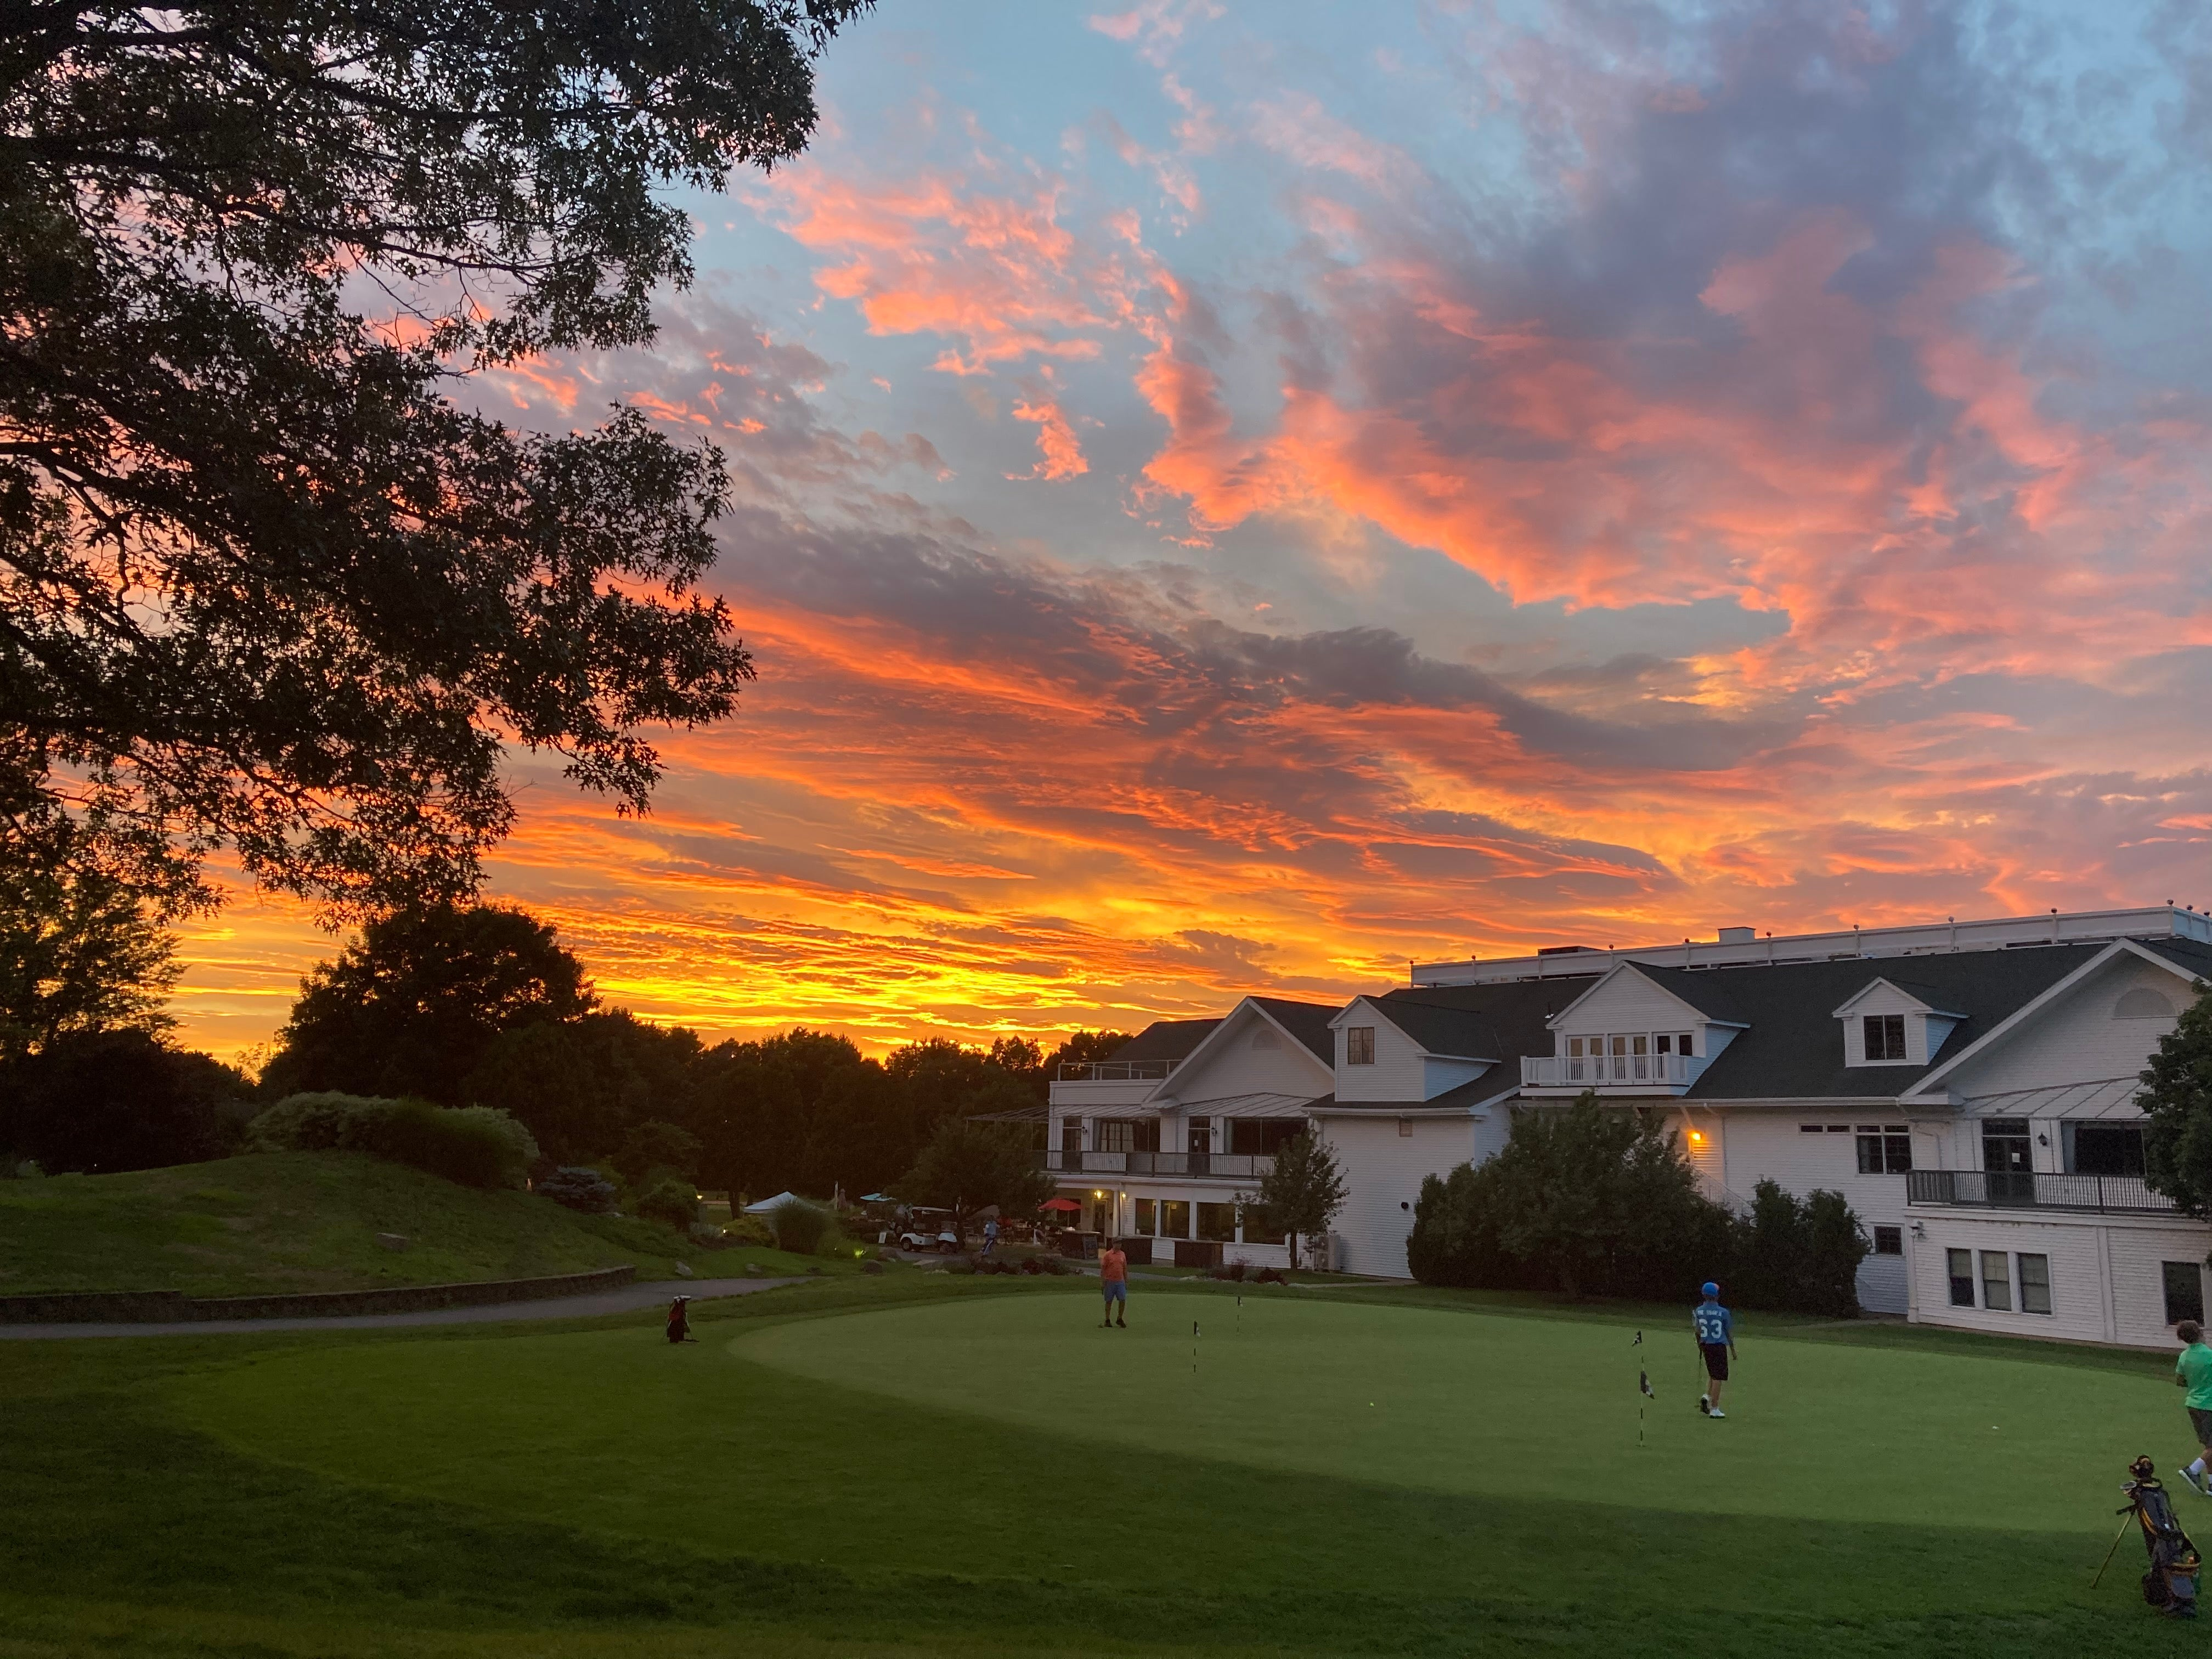 Sunset over Black Swan Country Club